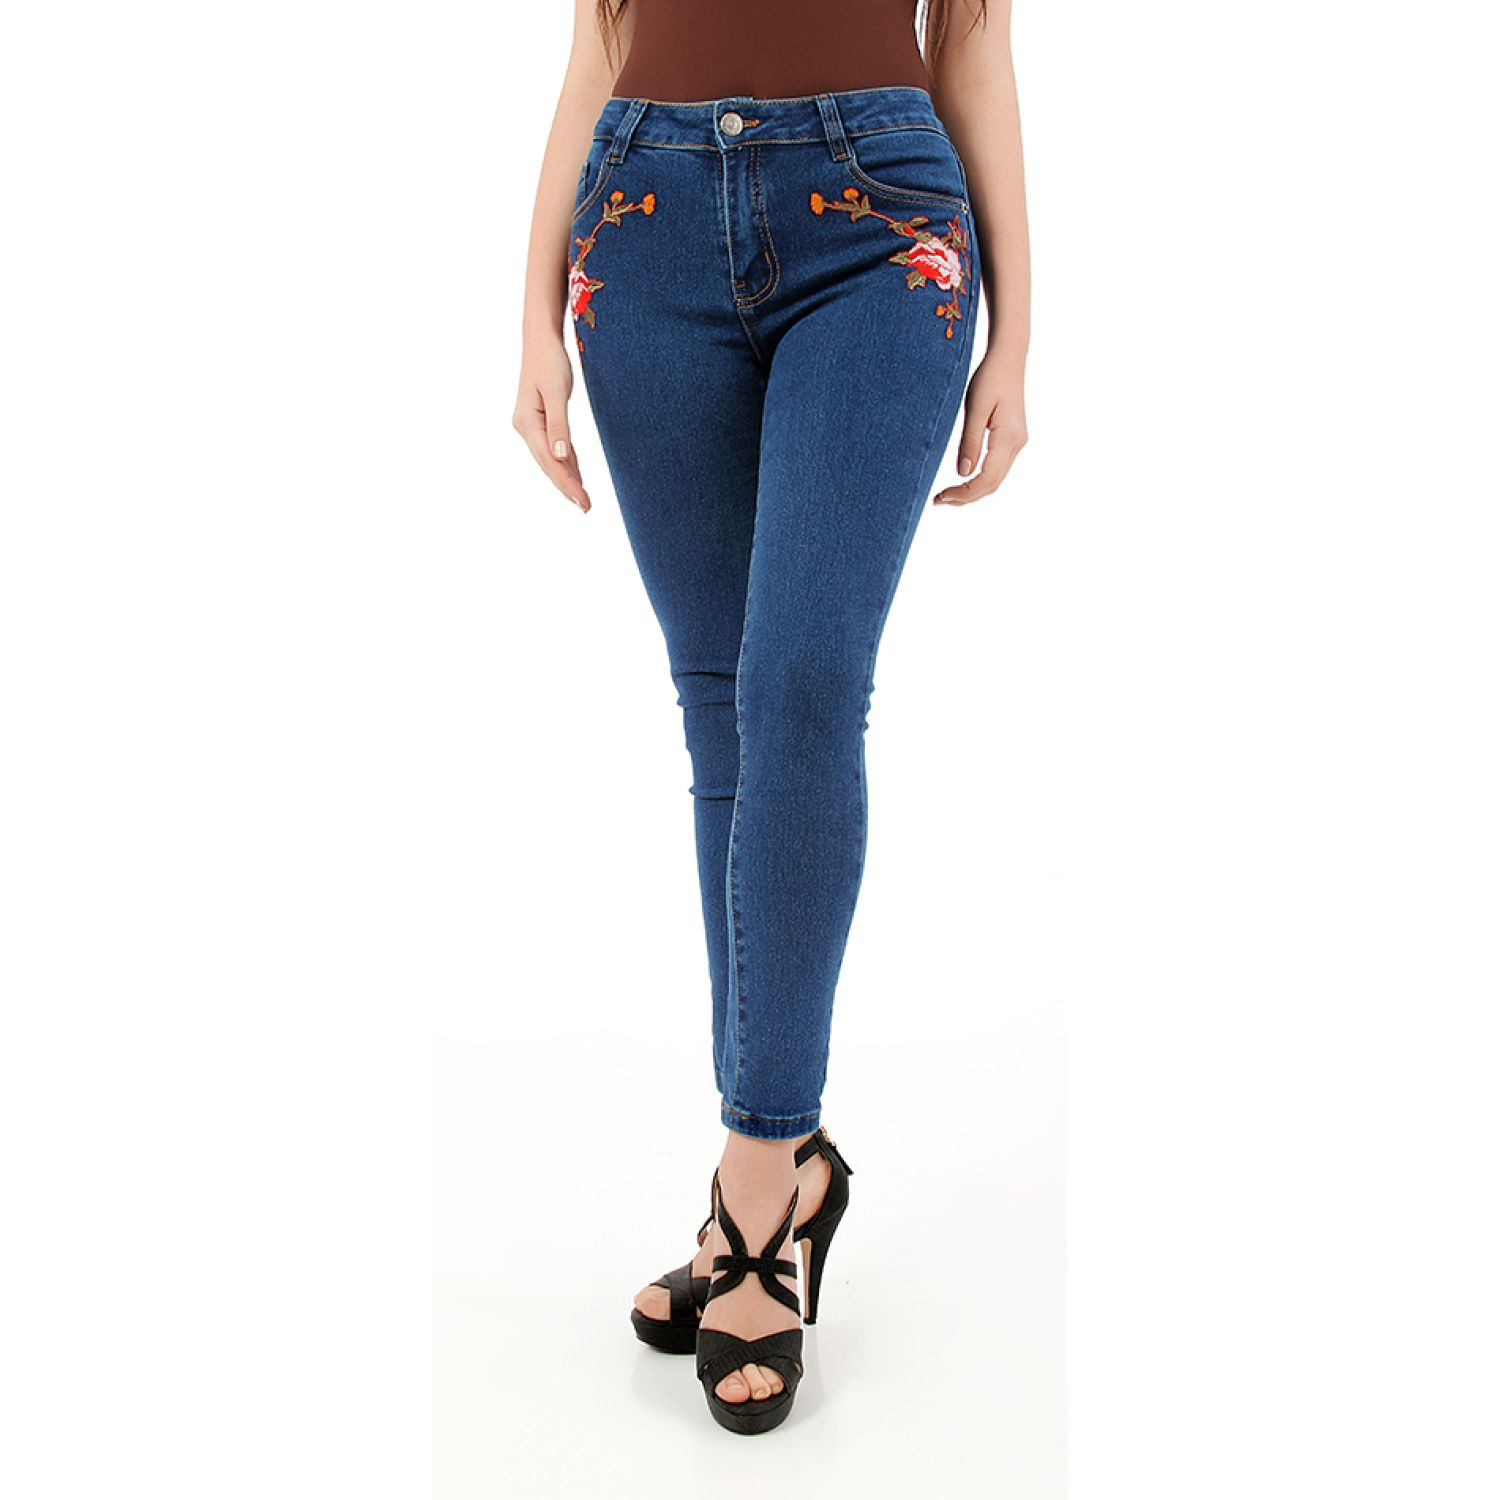 CUSTER BRODERIEW Azul Jeans